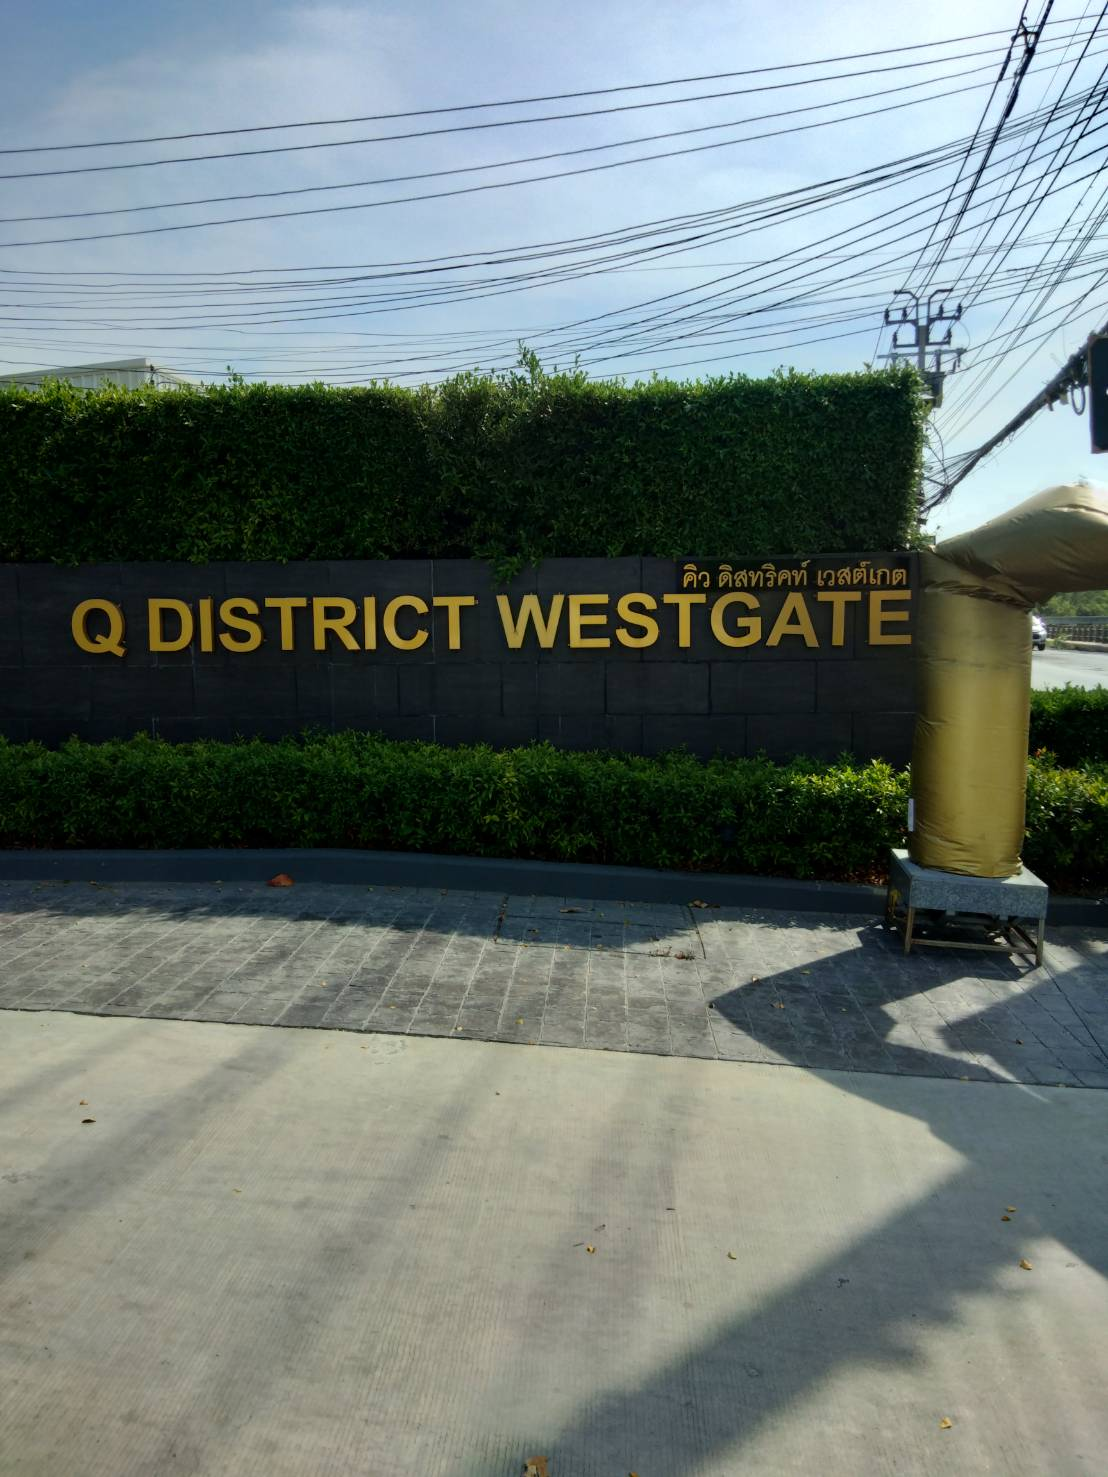 Q District Westgate